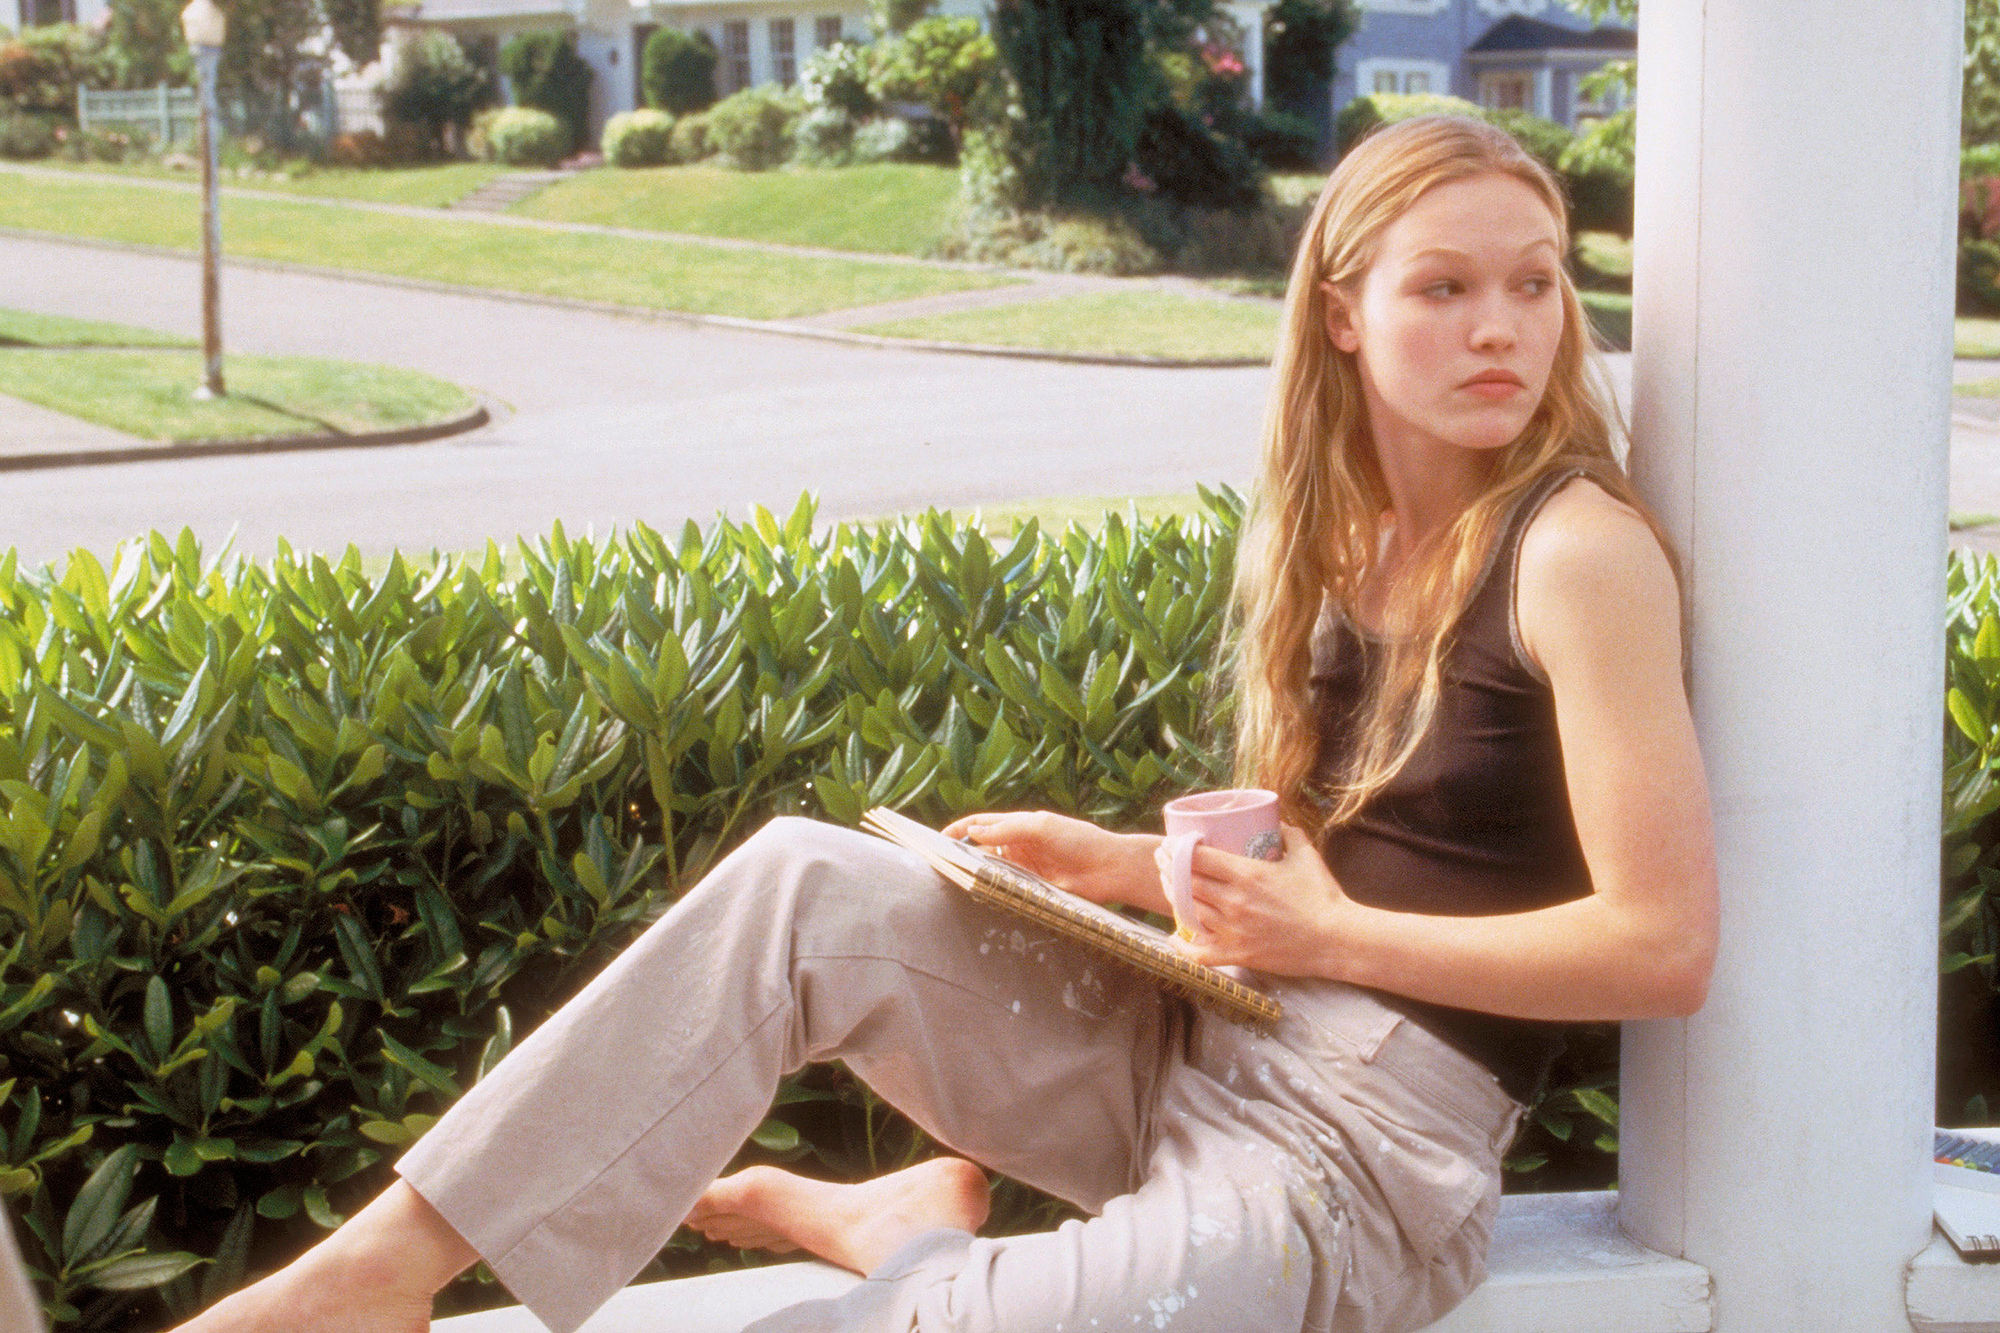 10 THINGS I HATE ABOUT YOU, Julia Stiles, 1999, © Buena Vista/courtesy Everett Collection